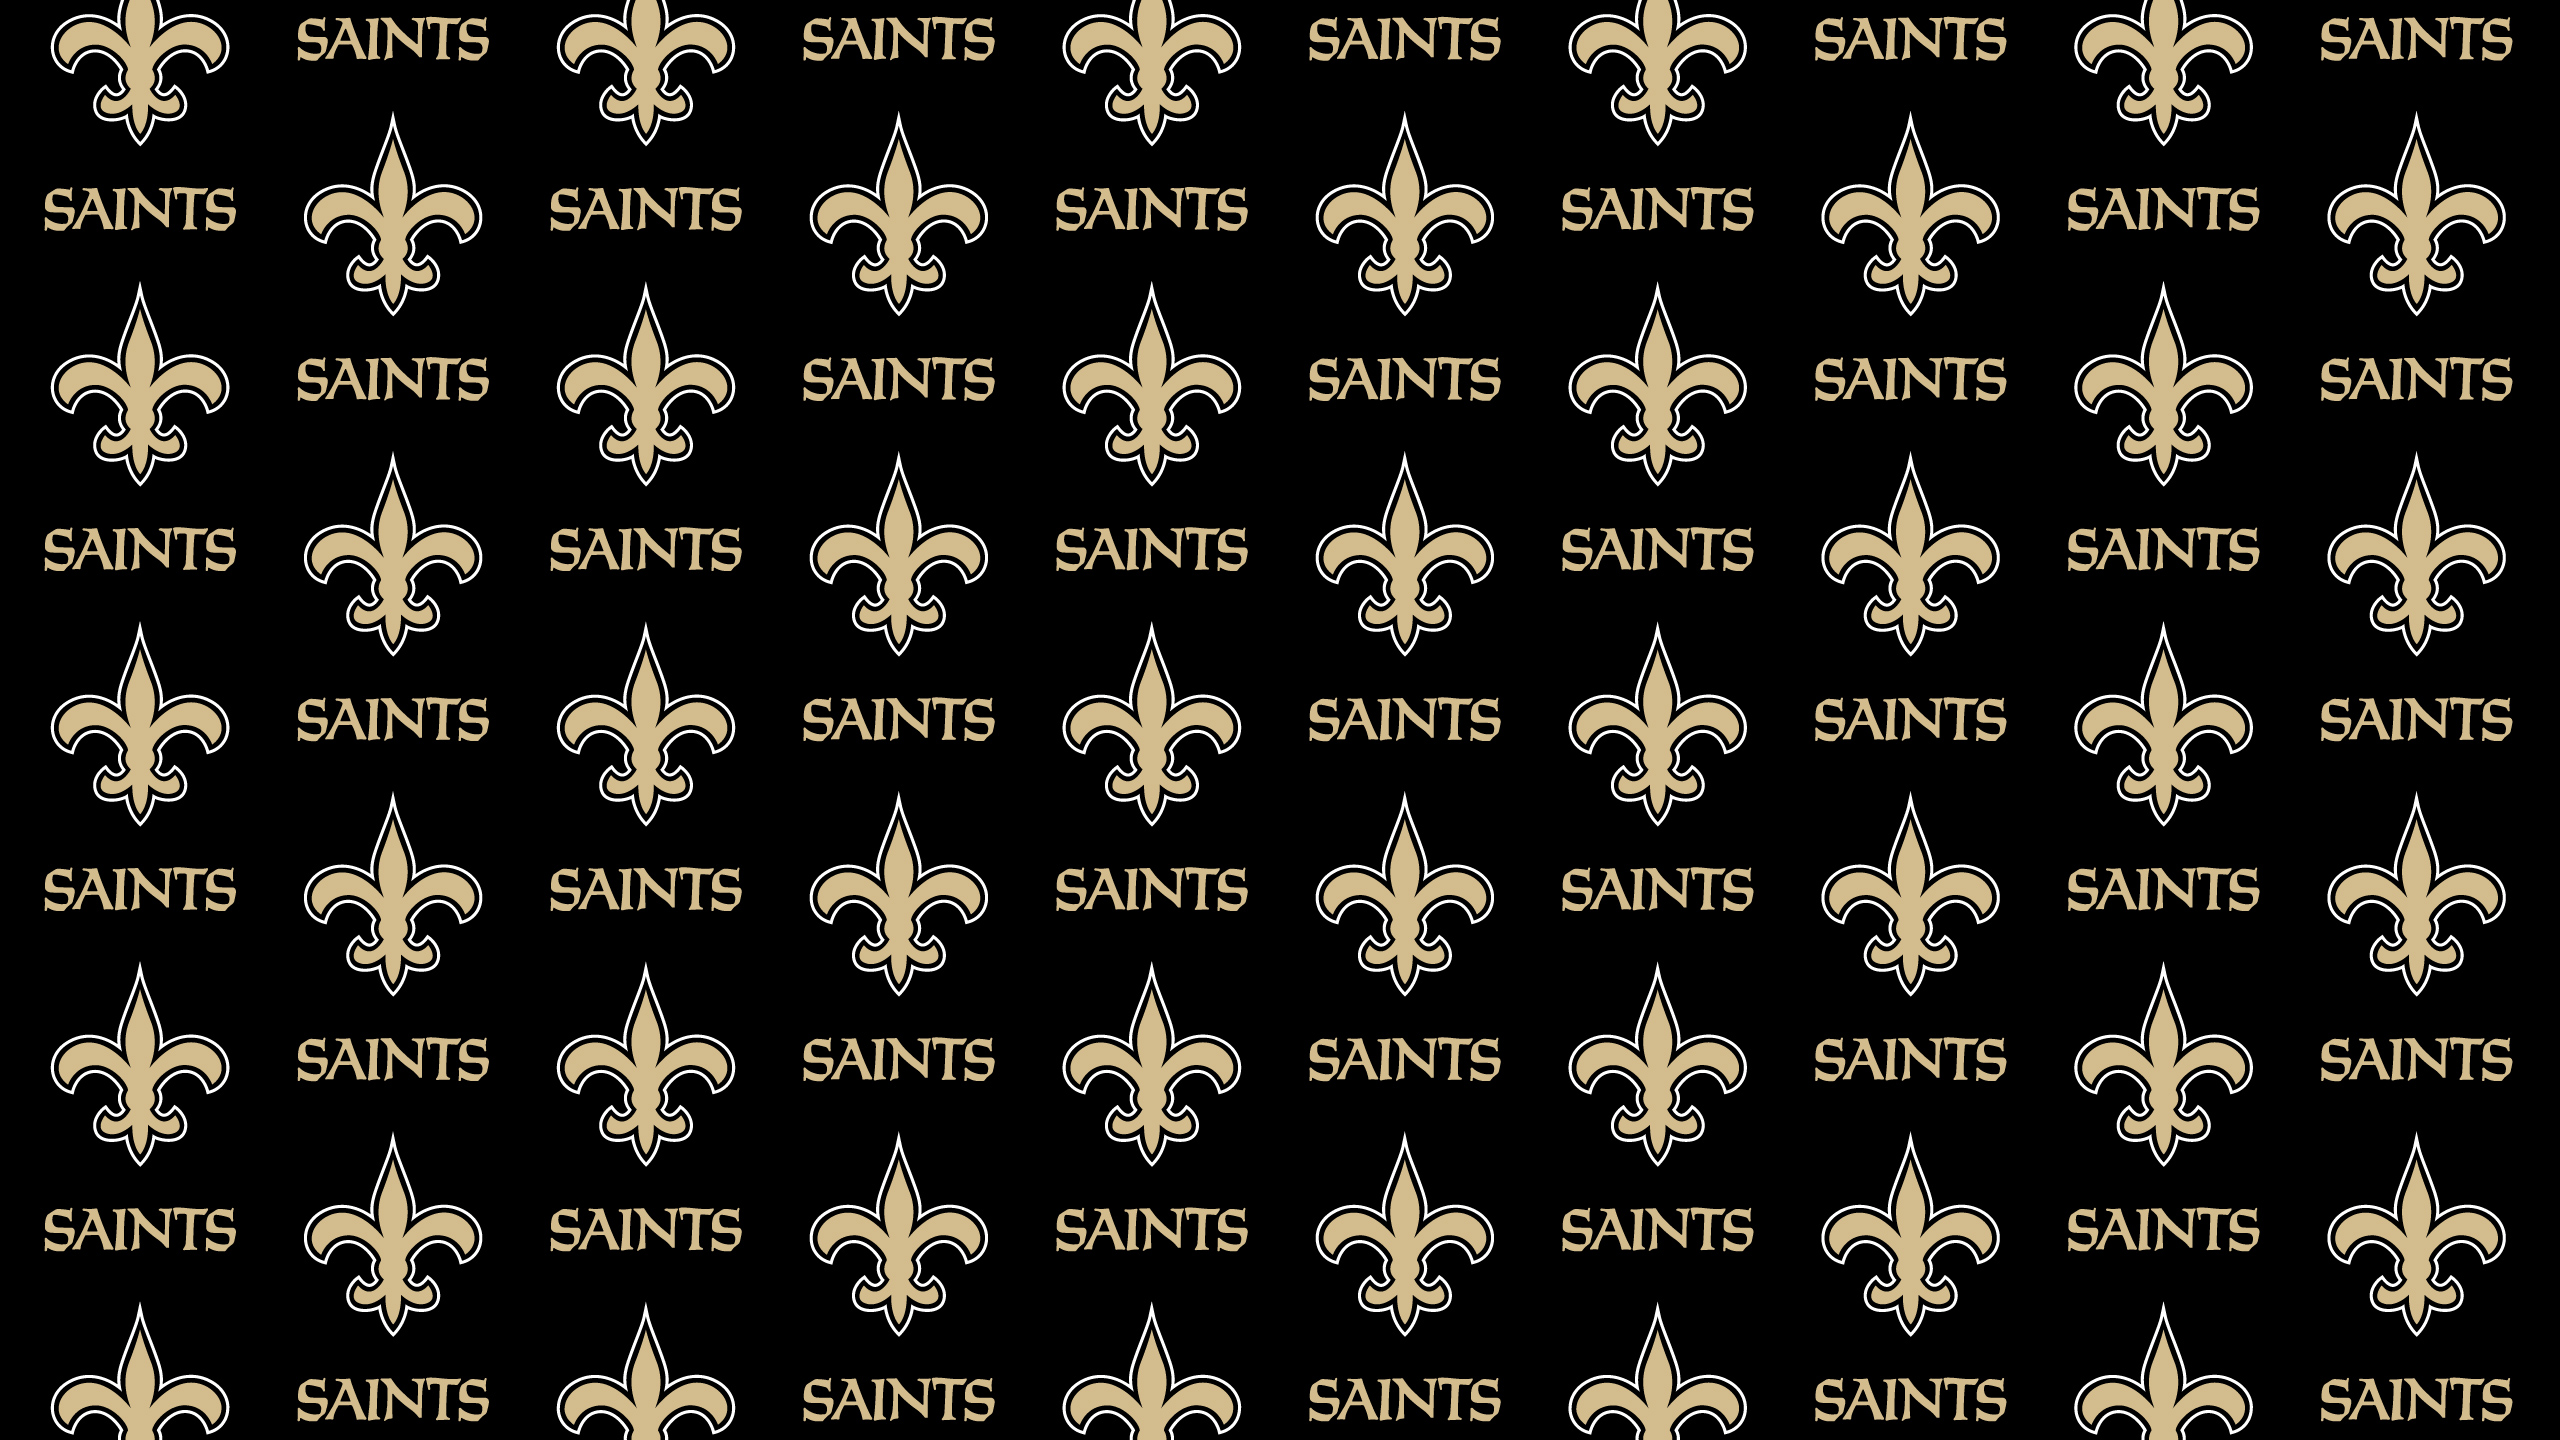 10 video conference backgrounds for Saints fans working remotely 2560x1440